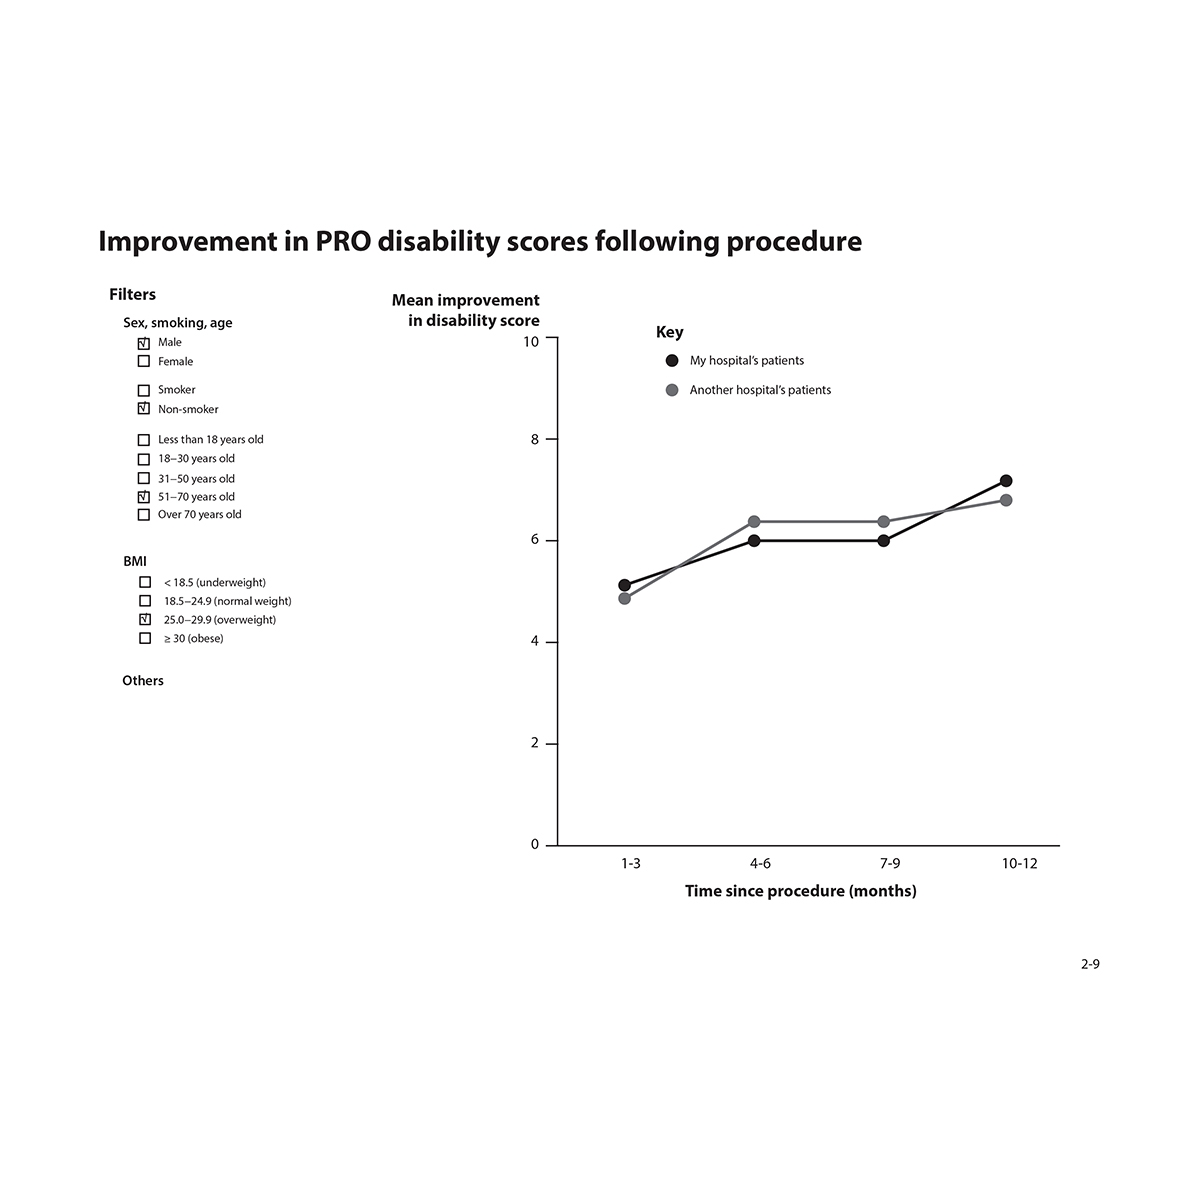 Graph showing mean improvement in PRO disability scores following procedure (compare my hospital to another group's patients) over time with filter parameters shown.